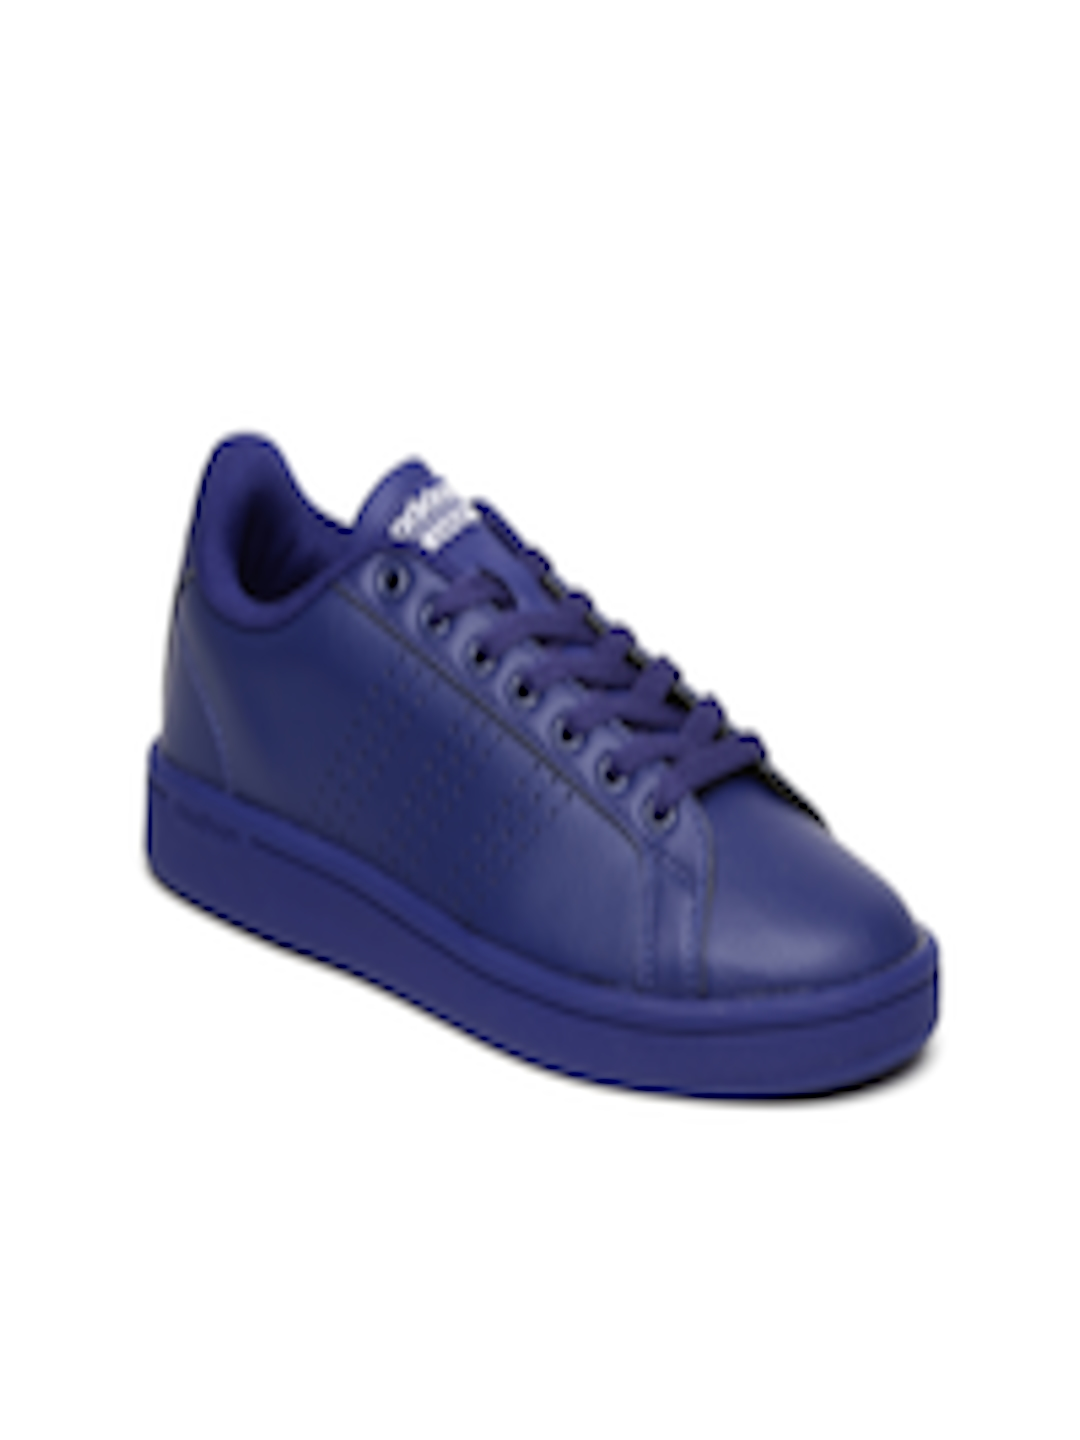 new product d1249 934f4 Buy ADIDAS NEO Women Navy Cloudfoam Advantage Clean Leather Sneakers -  Casual Shoes for Women 1731107  Myntra